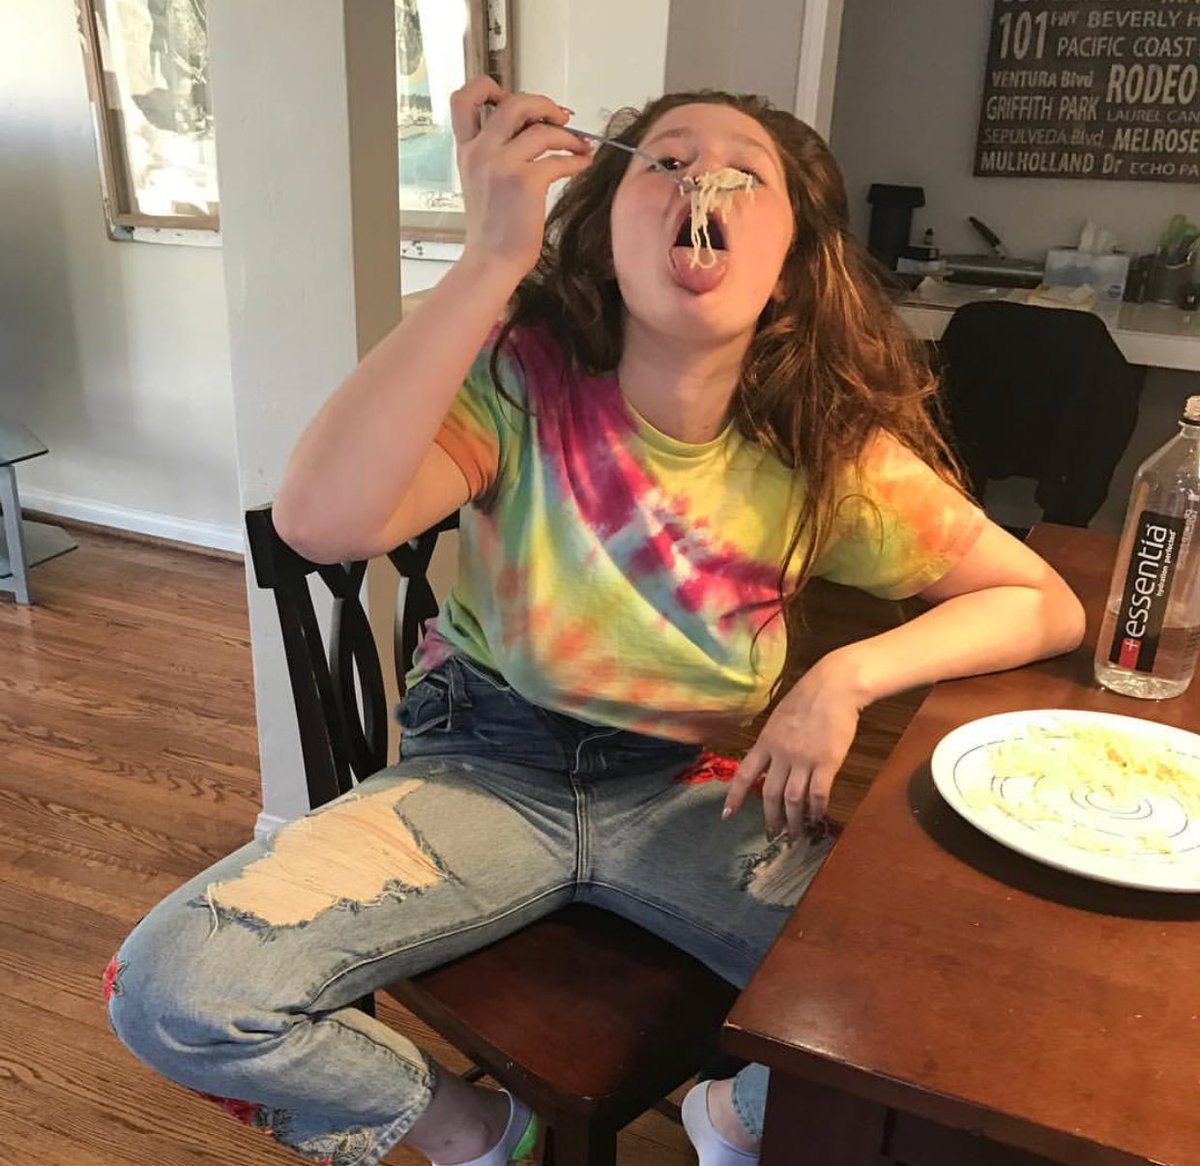 2019 year for lady- Pants unbuttoned after eating photo